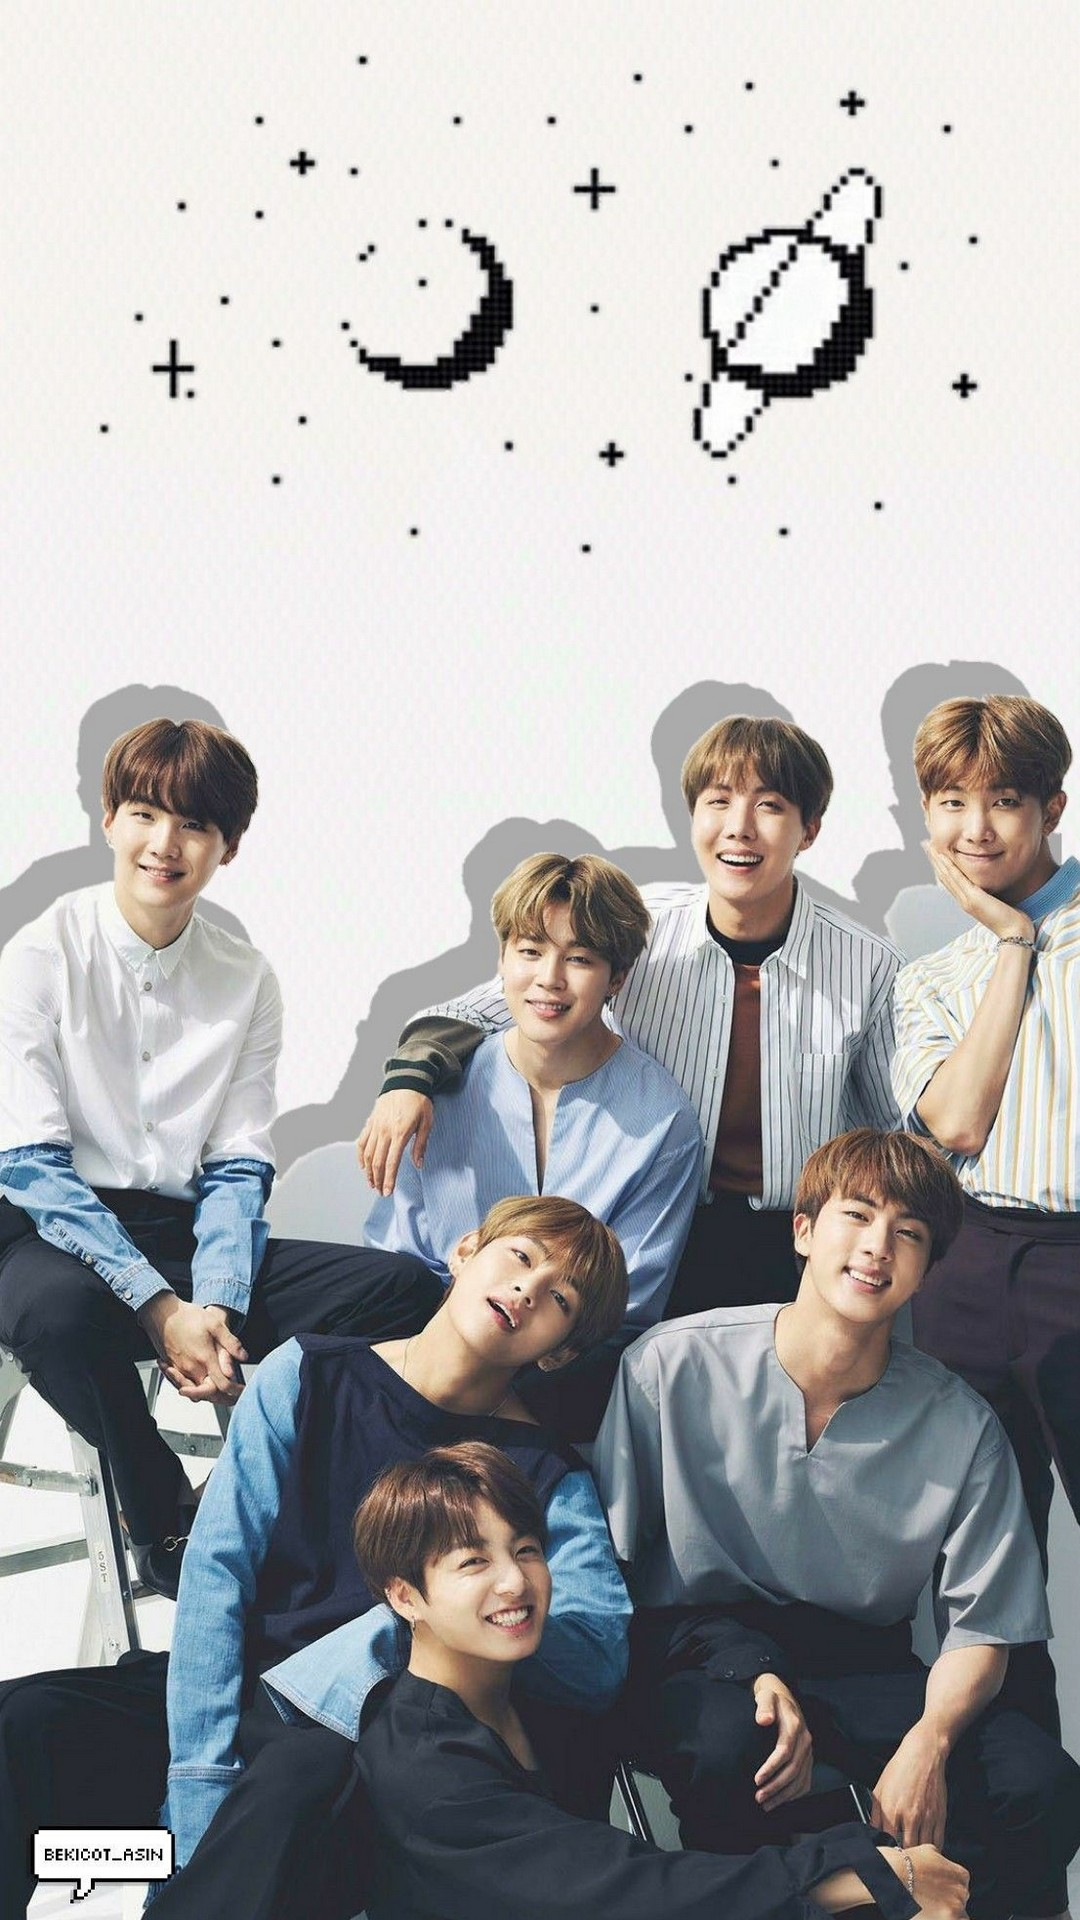 BTS Wallpaper Android   2020 Android Wallpapers 1080x1920